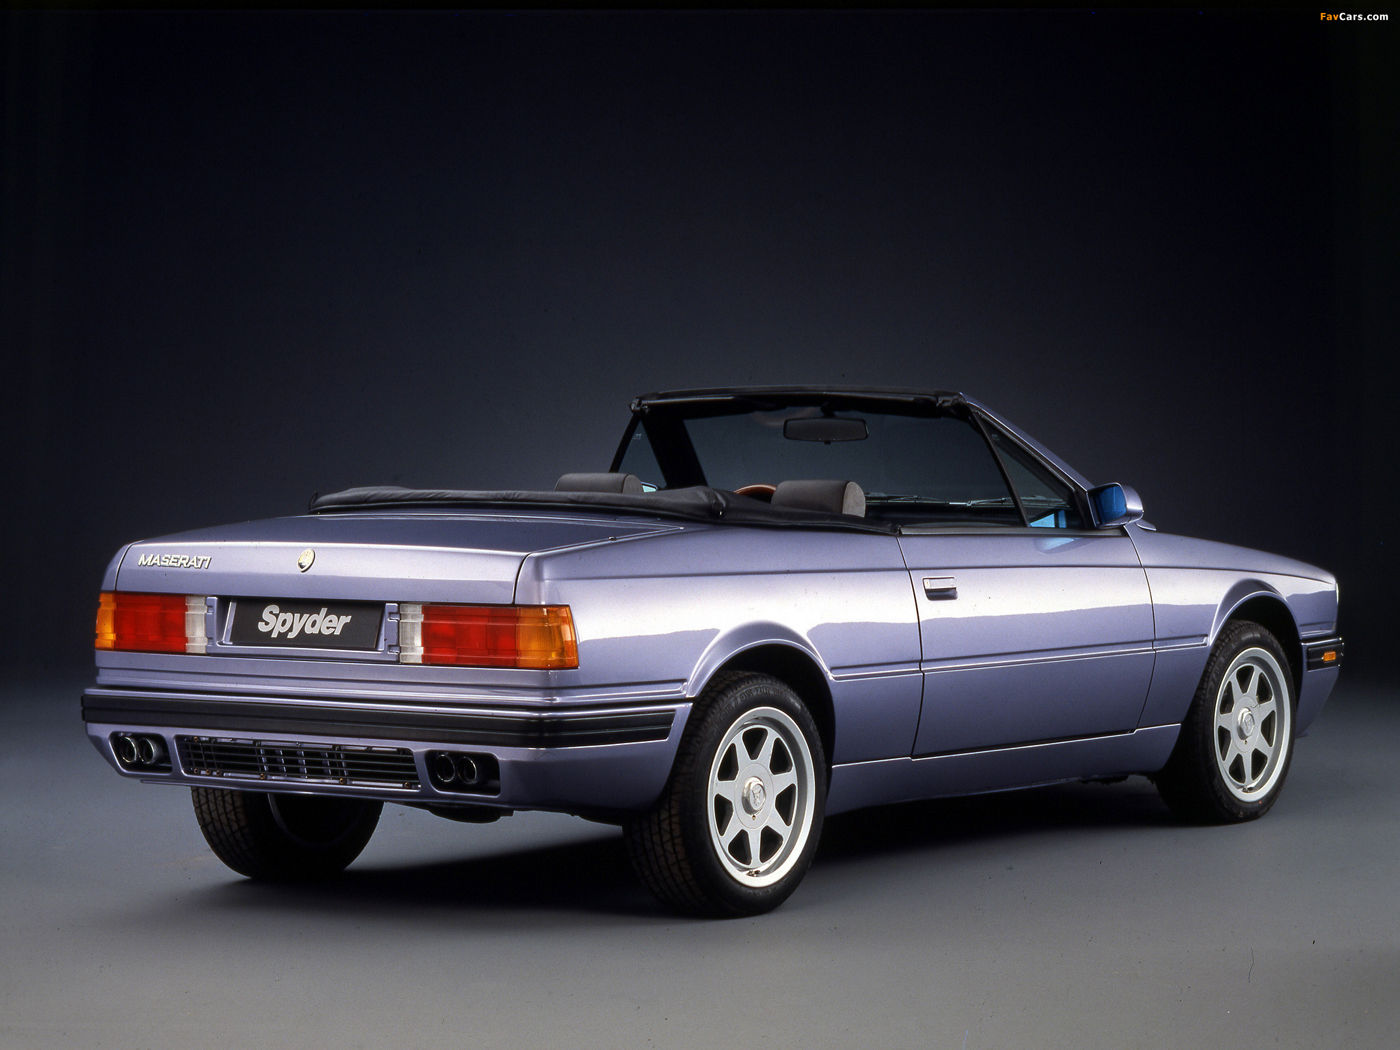 1991 Maserati Spyder III - rear view of the classic convertible